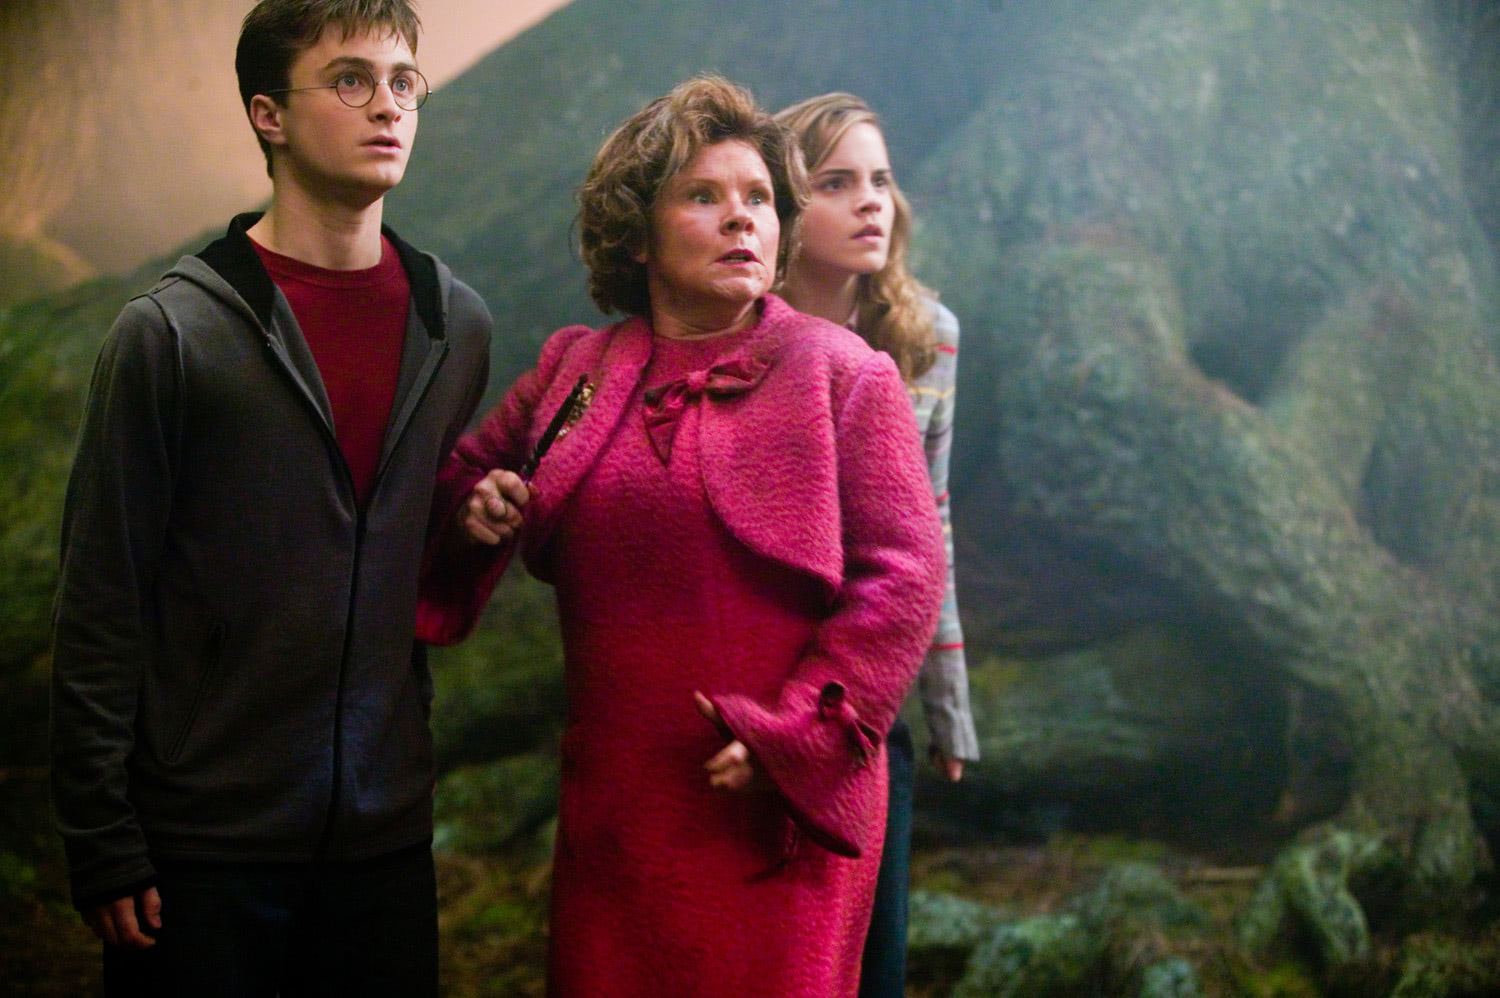 Harry, Umbridge and Hermione in the Forbidden Forest